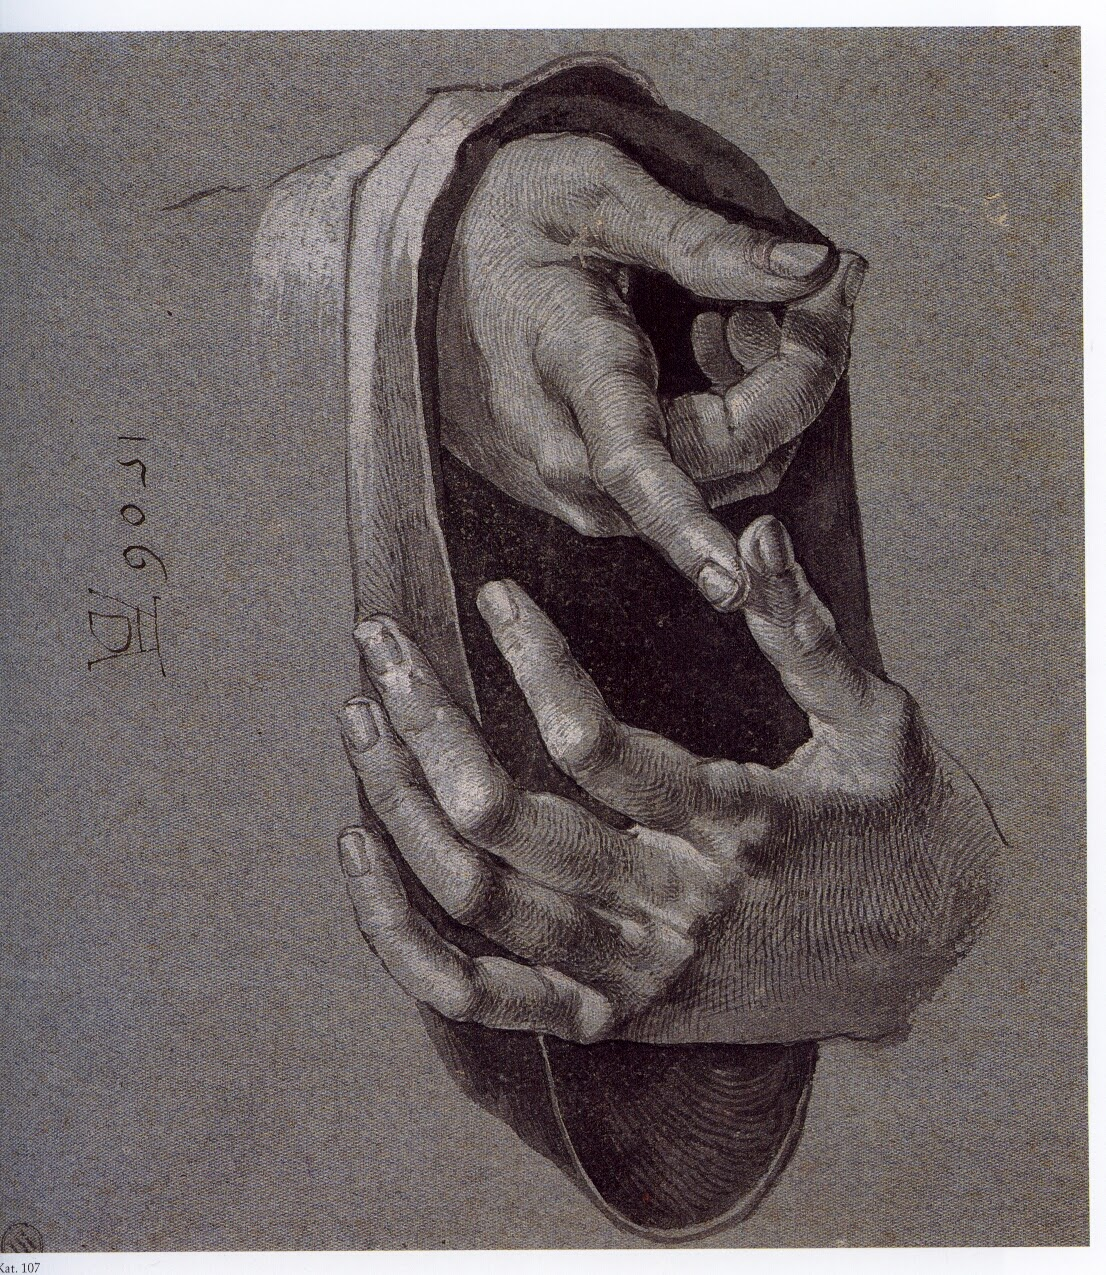 Clenched Fist Gesture 644510 furthermore Albrecht Durer Art Of Cross Contour together with Rembrandt S Saskia Asleep 204604957 together with Scribble and Gesture in addition Detailed Hand Demos Drawing And Shading Hands. on gesture drawing art